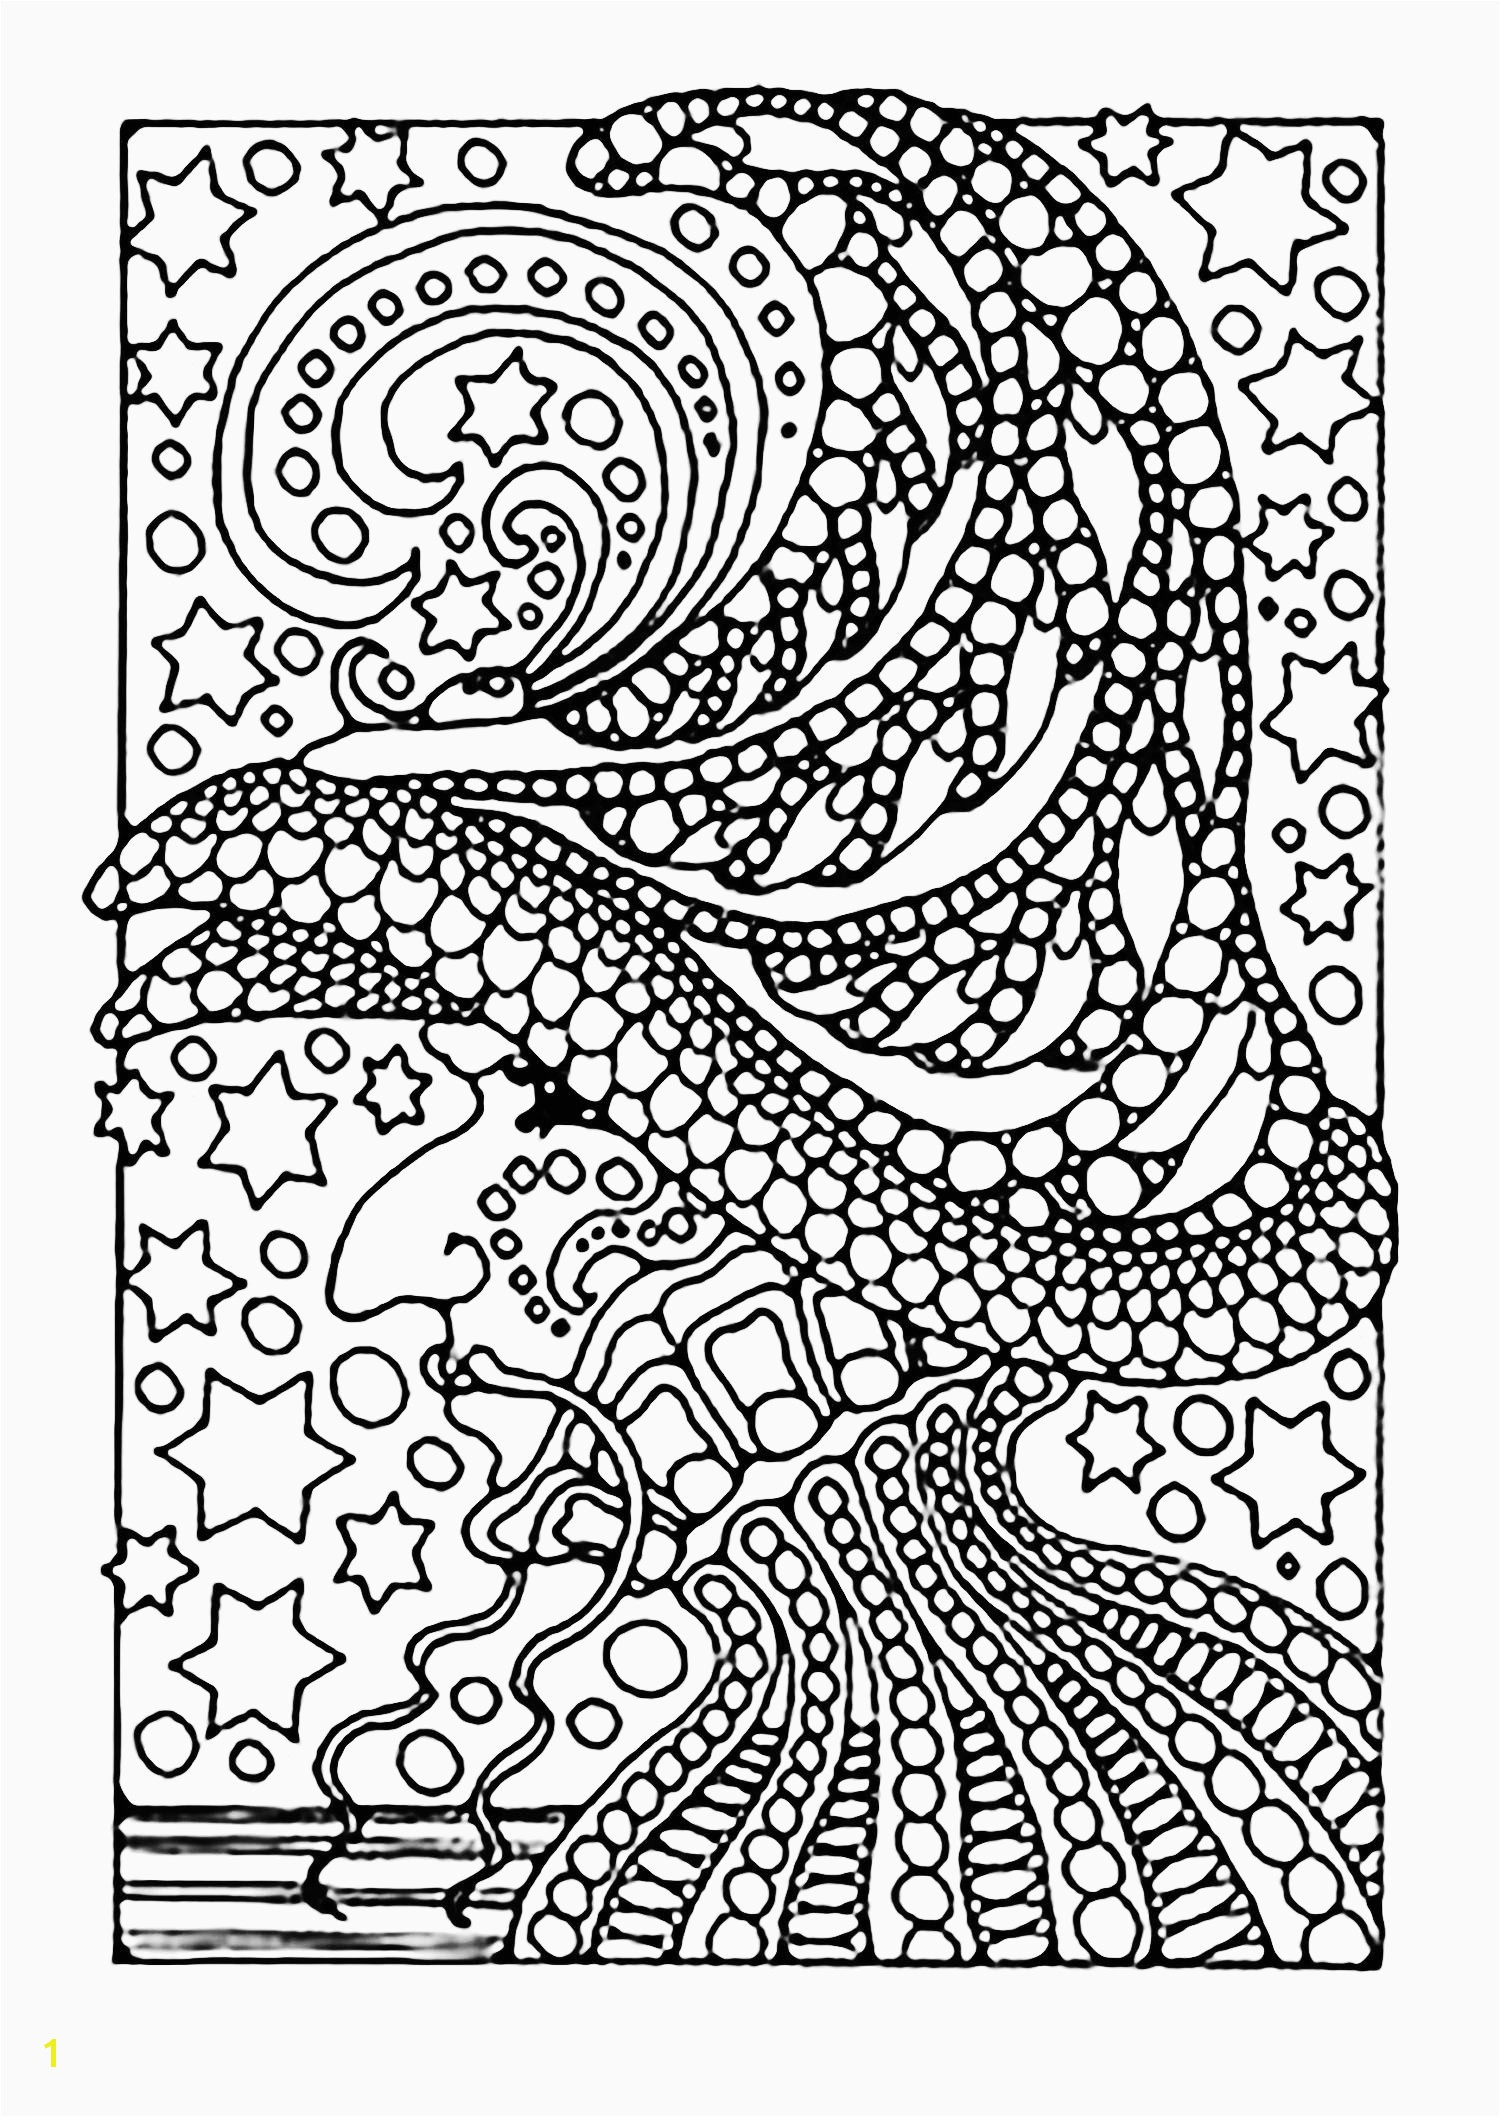 Free Art Coloring Pages for Adults Lovely Cool Coloring Page Unique Witch Coloring Pages New Crayola